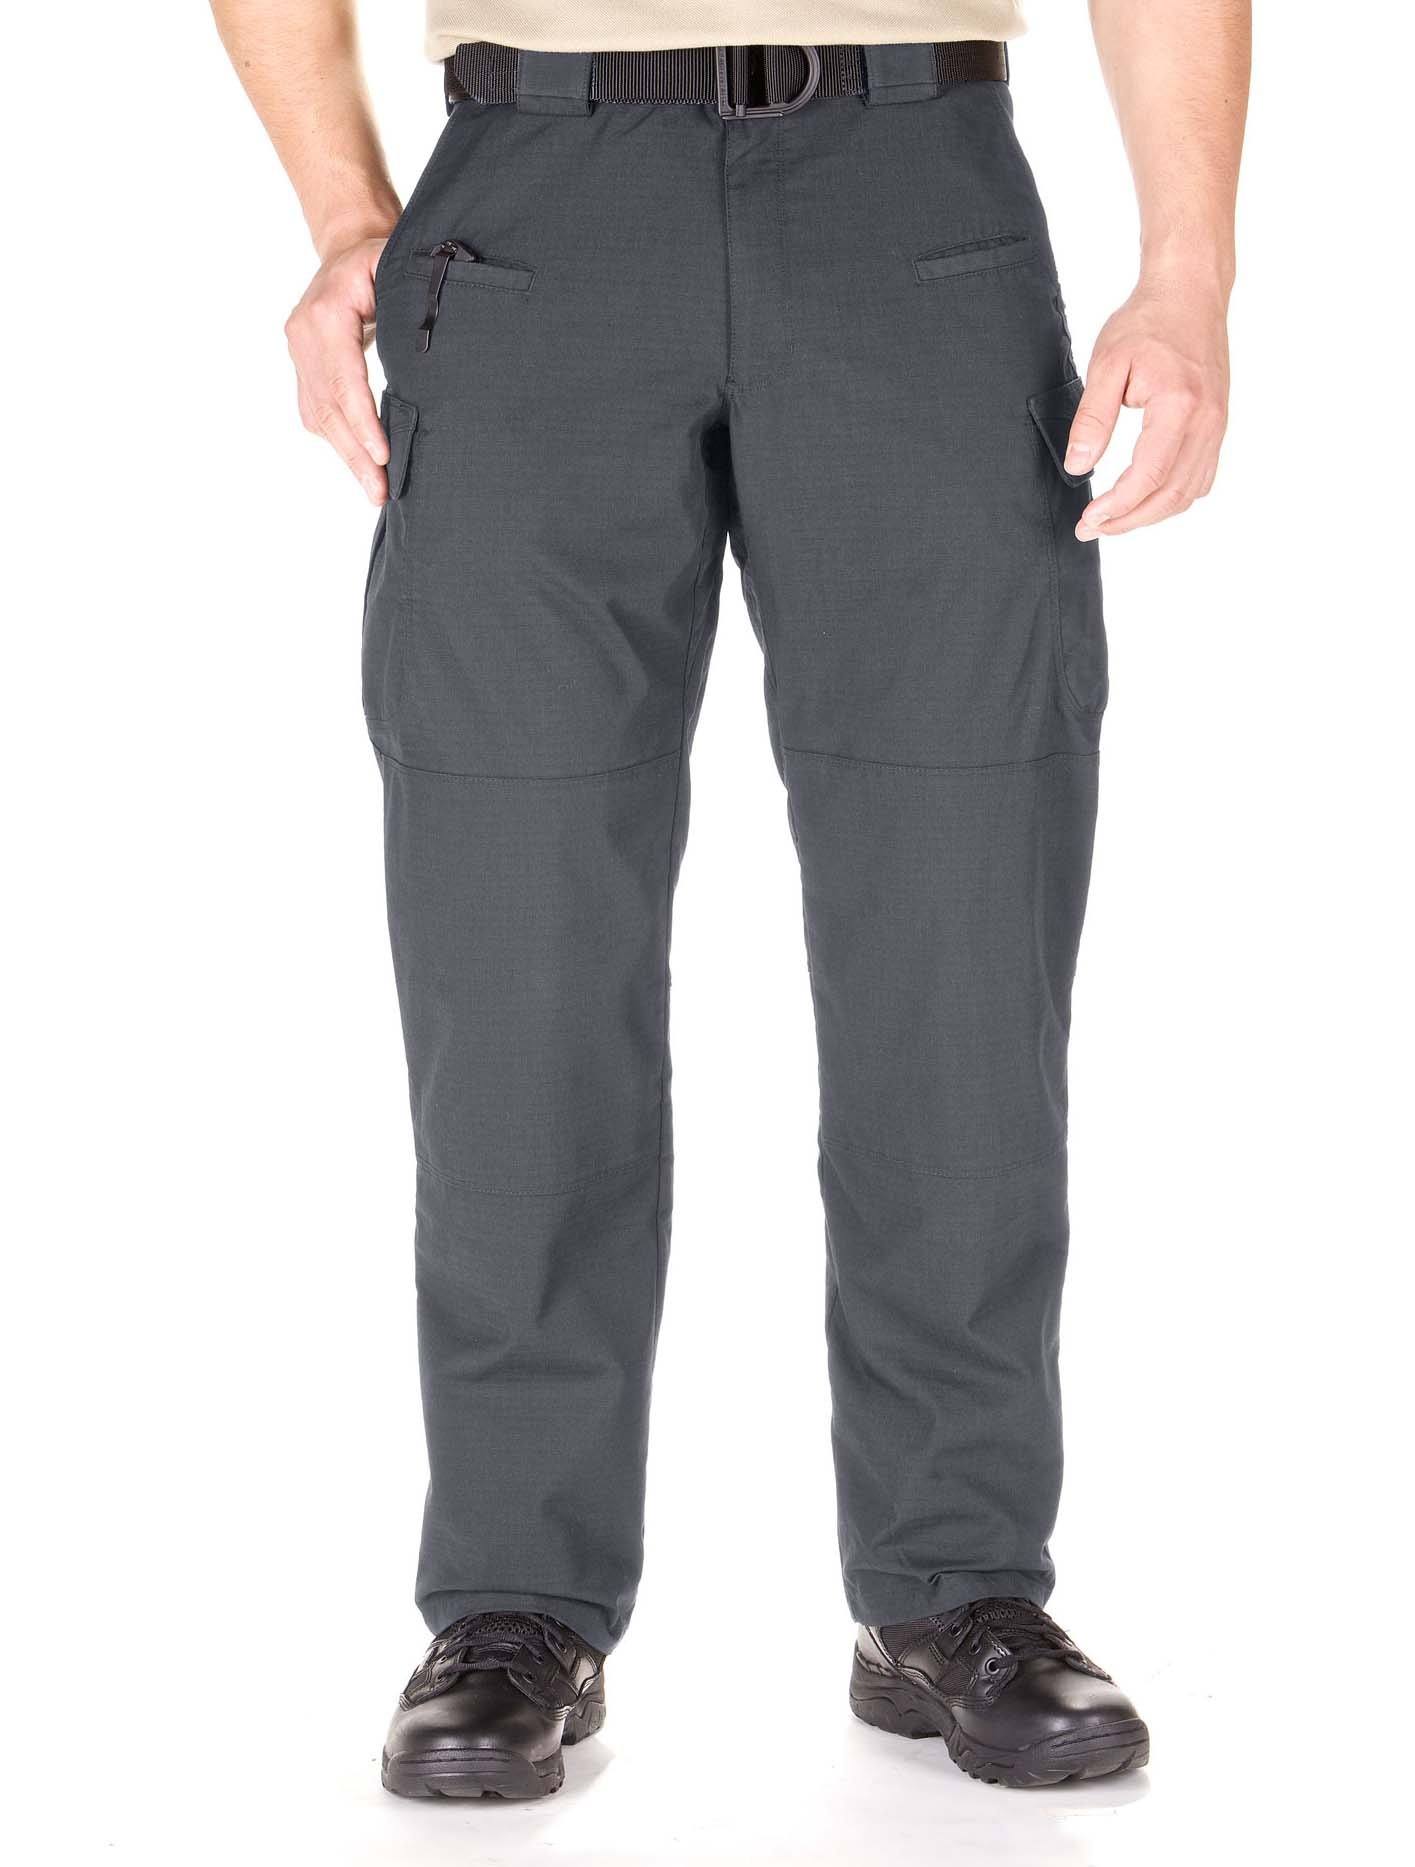 5.11 Men's STRYKE Tactical Cargo Pant with Flex-Tac, Style 74369, Charcoal, 44W x 34L